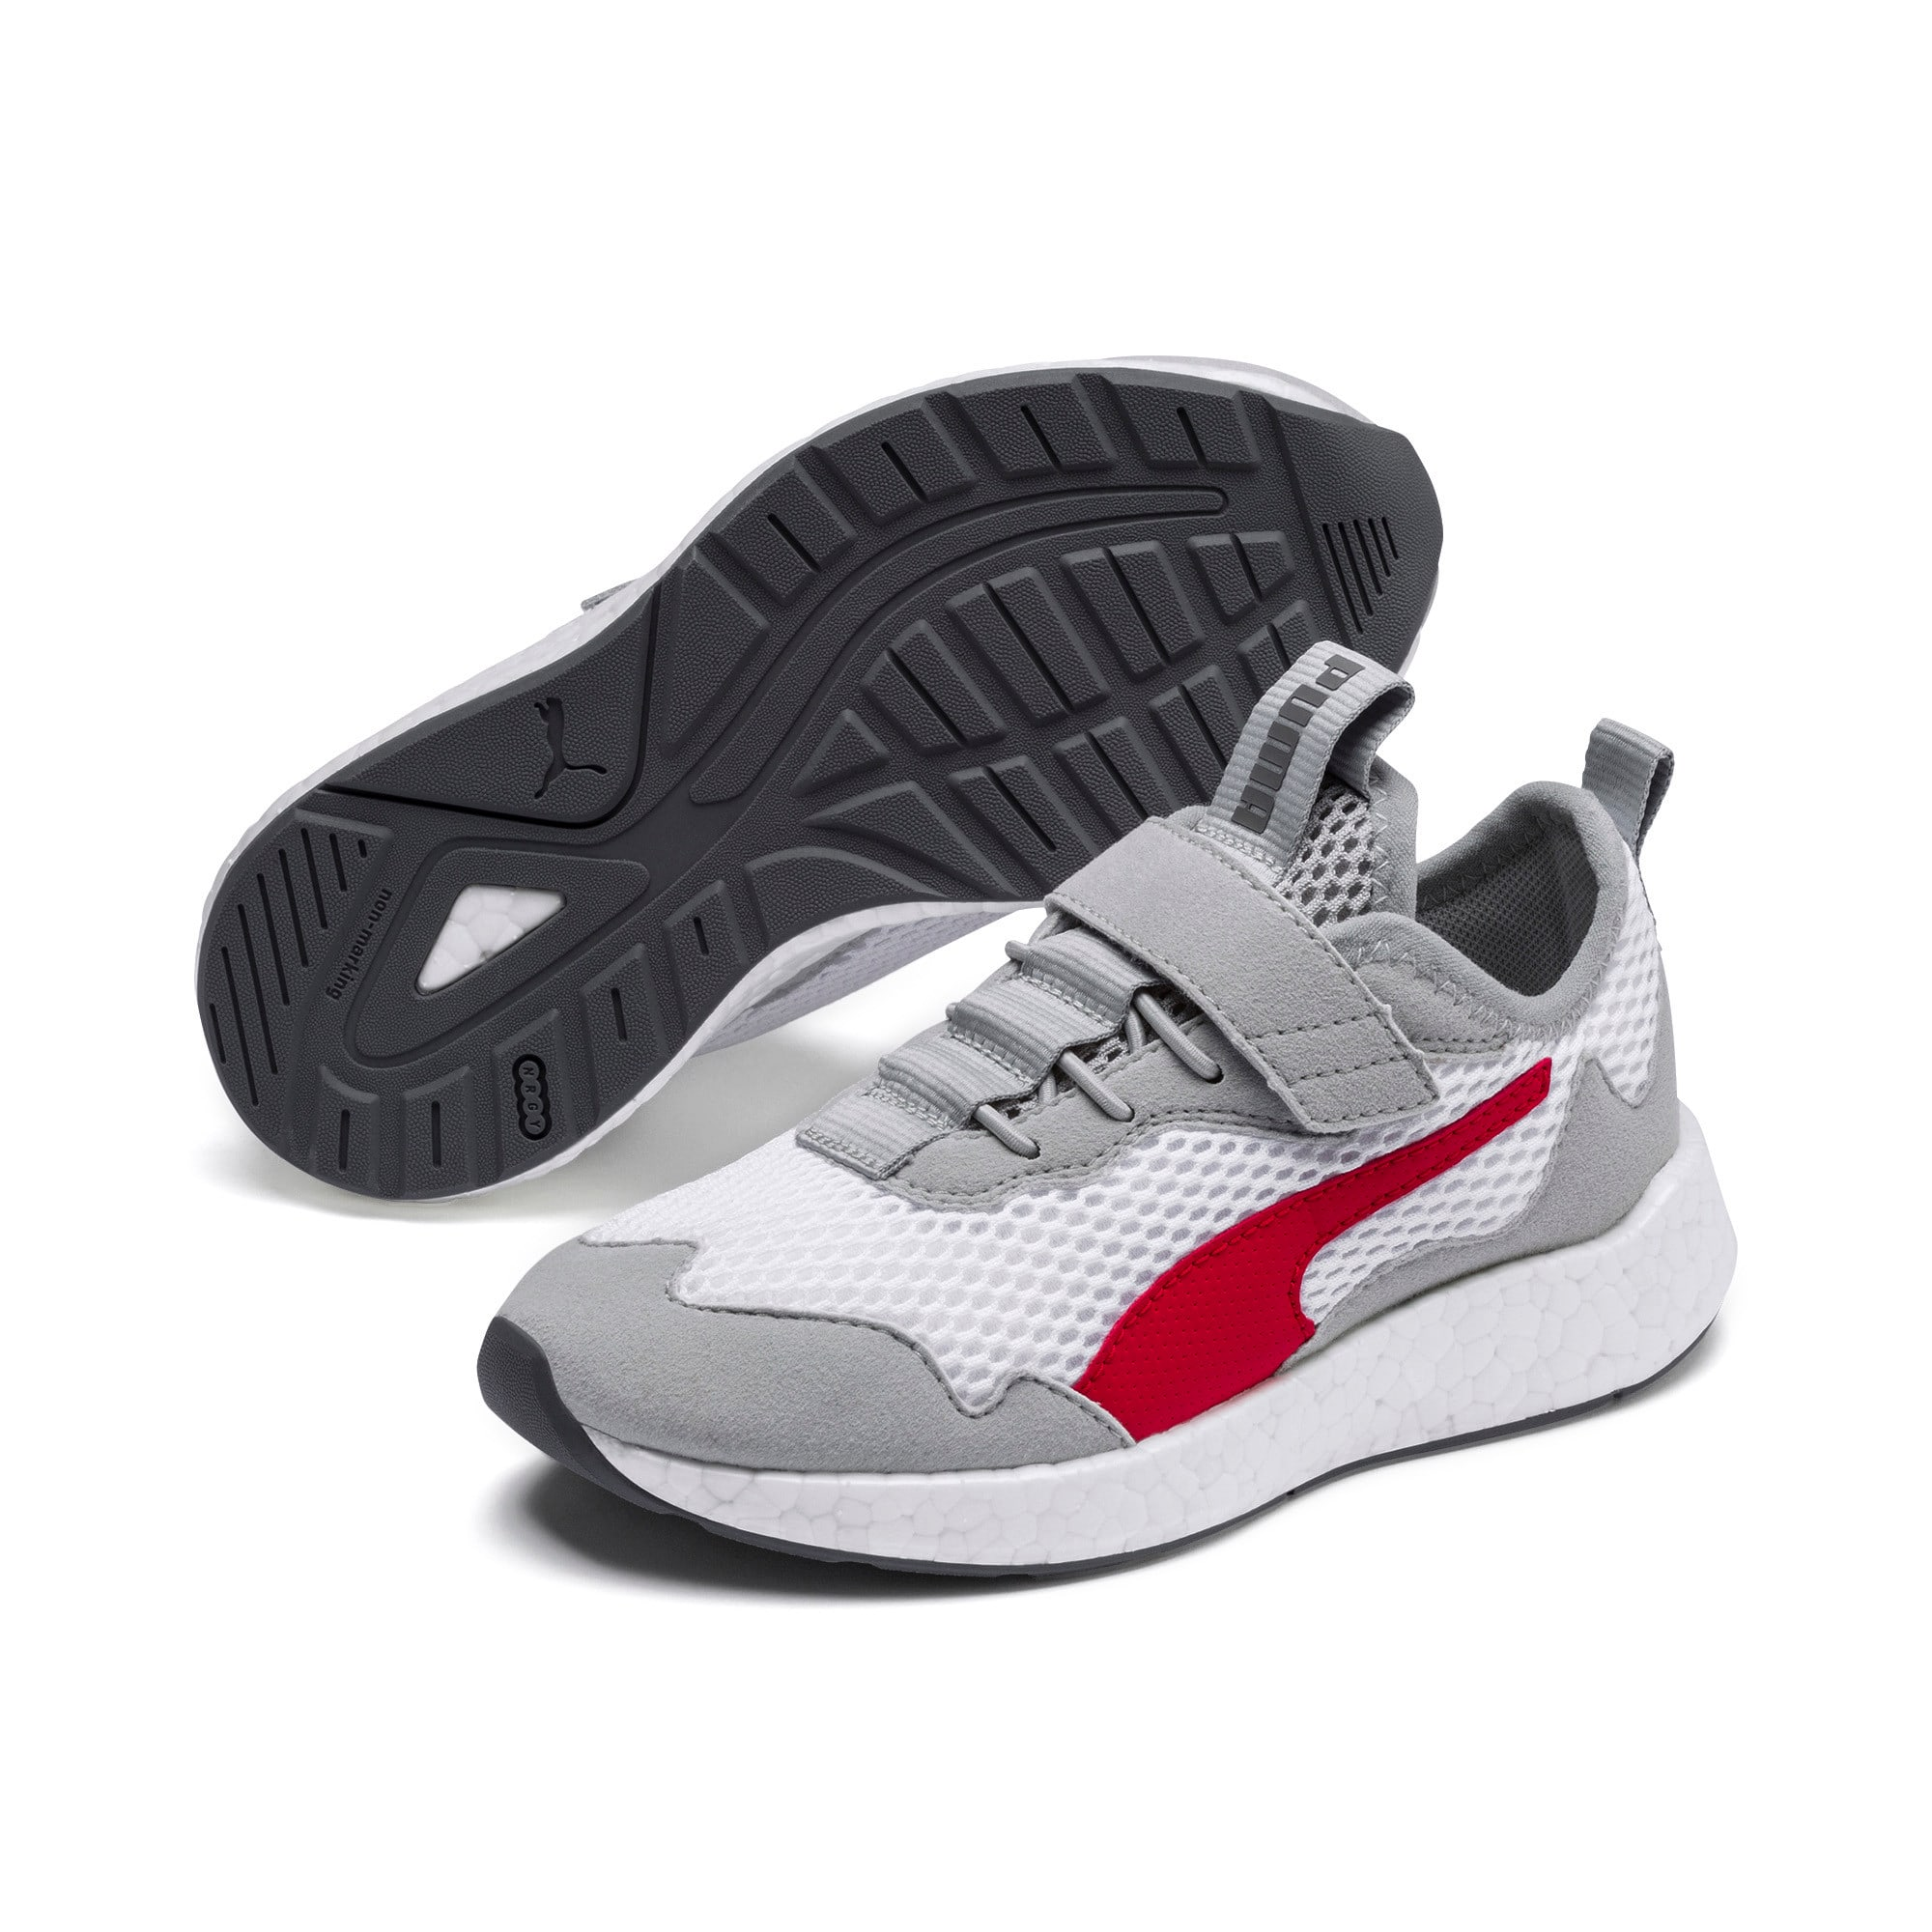 Thumbnail 2 of NRGY Neko Skim AC Kids' Trainers, White-H Rise-CASTLEROCK-Red, medium